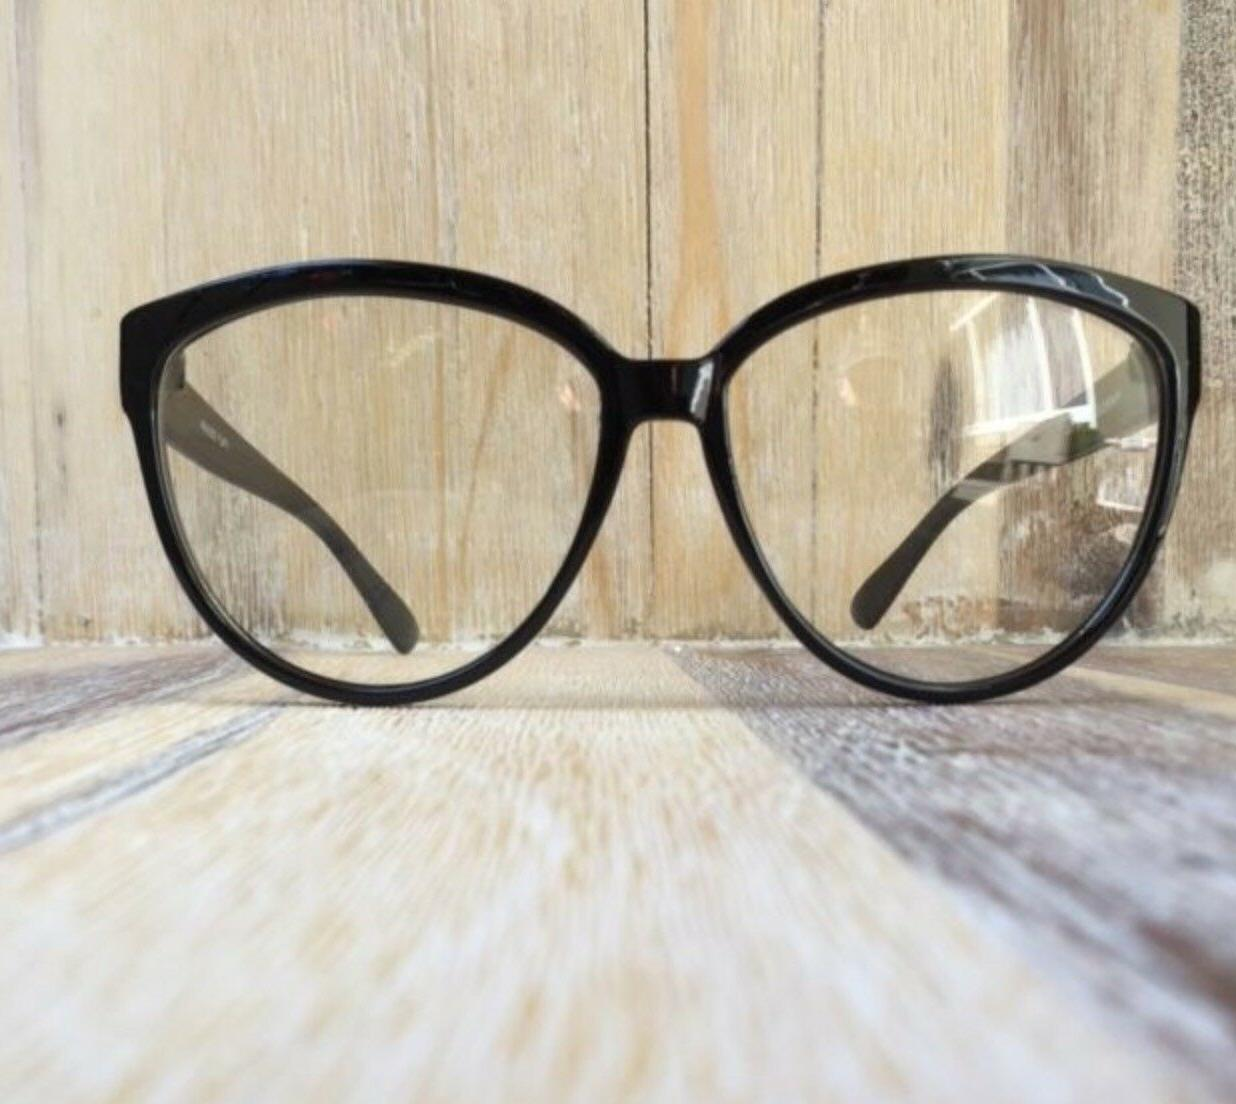 Large Sexy Cat Glasses Lens Look Fashion Frames L